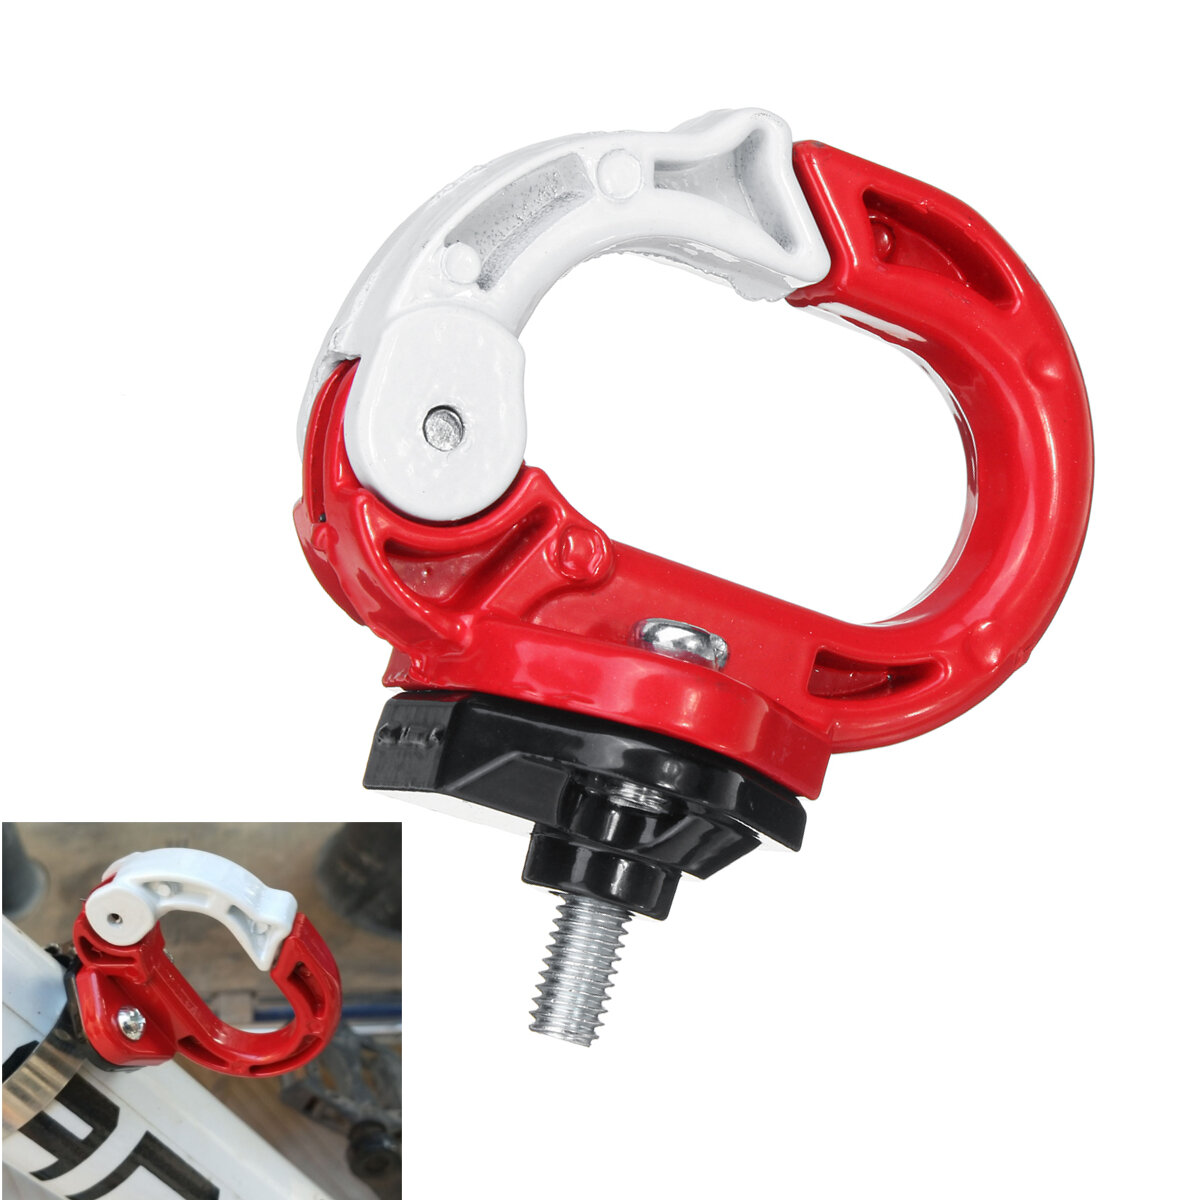 Aluminium Alloy Hanging Bag Hook Claw Untuk Xiaomi Mijia M365 Electric Scooter Motorcycle